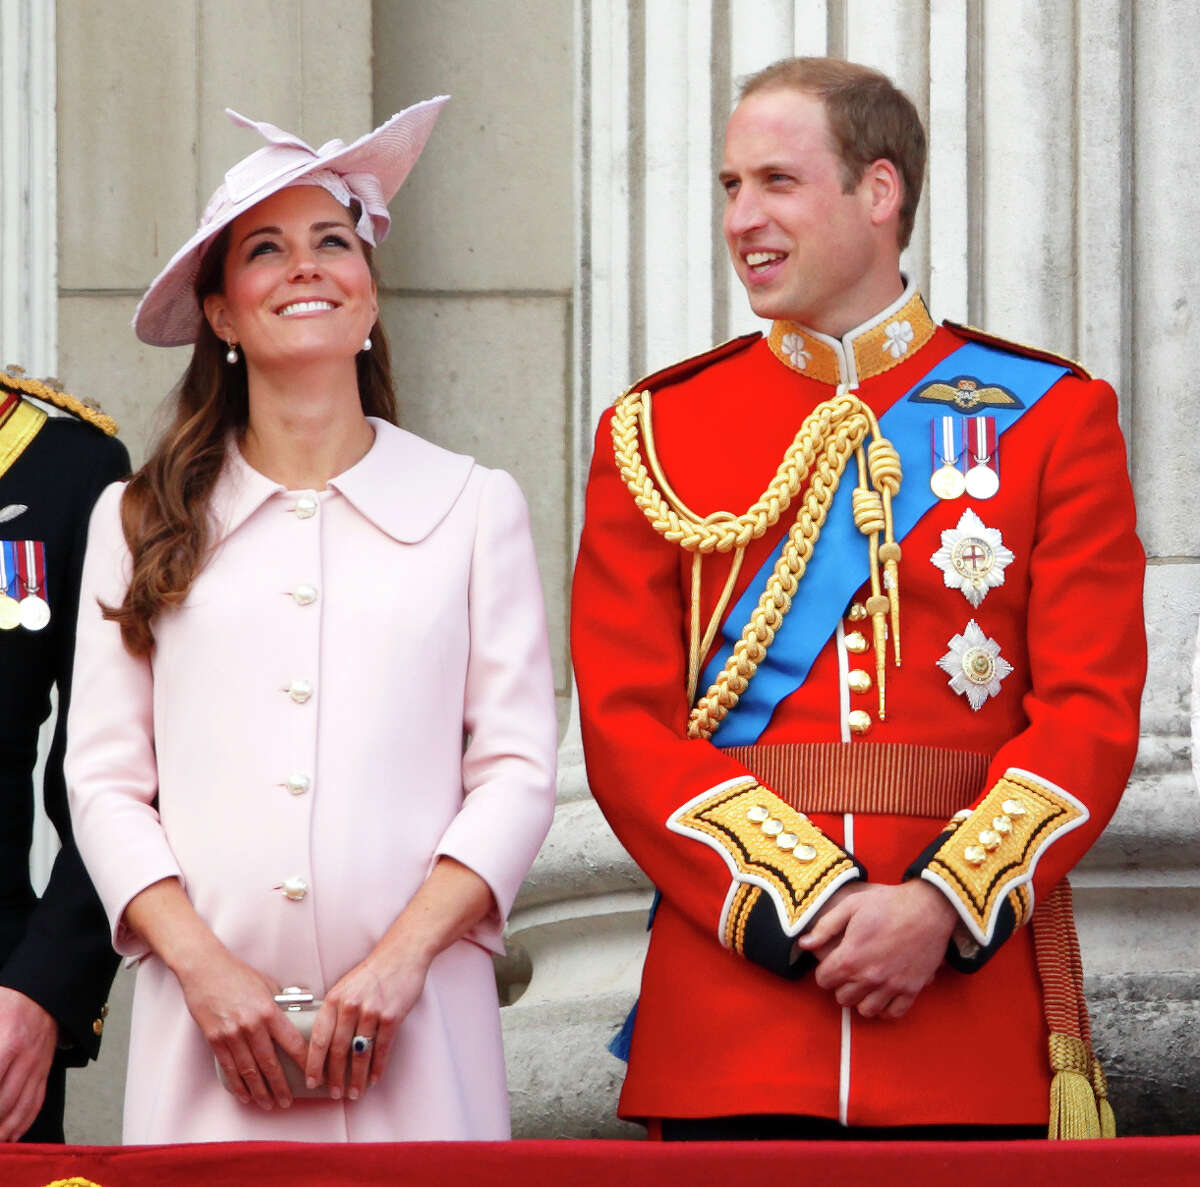 Catherine, Duchess of Cambridge and Prince William, Duke of Cambridge stand on the balcony of Buckingham Palace during the annual Trooping the Colour Ceremony on June 15, 2013 in London, England.